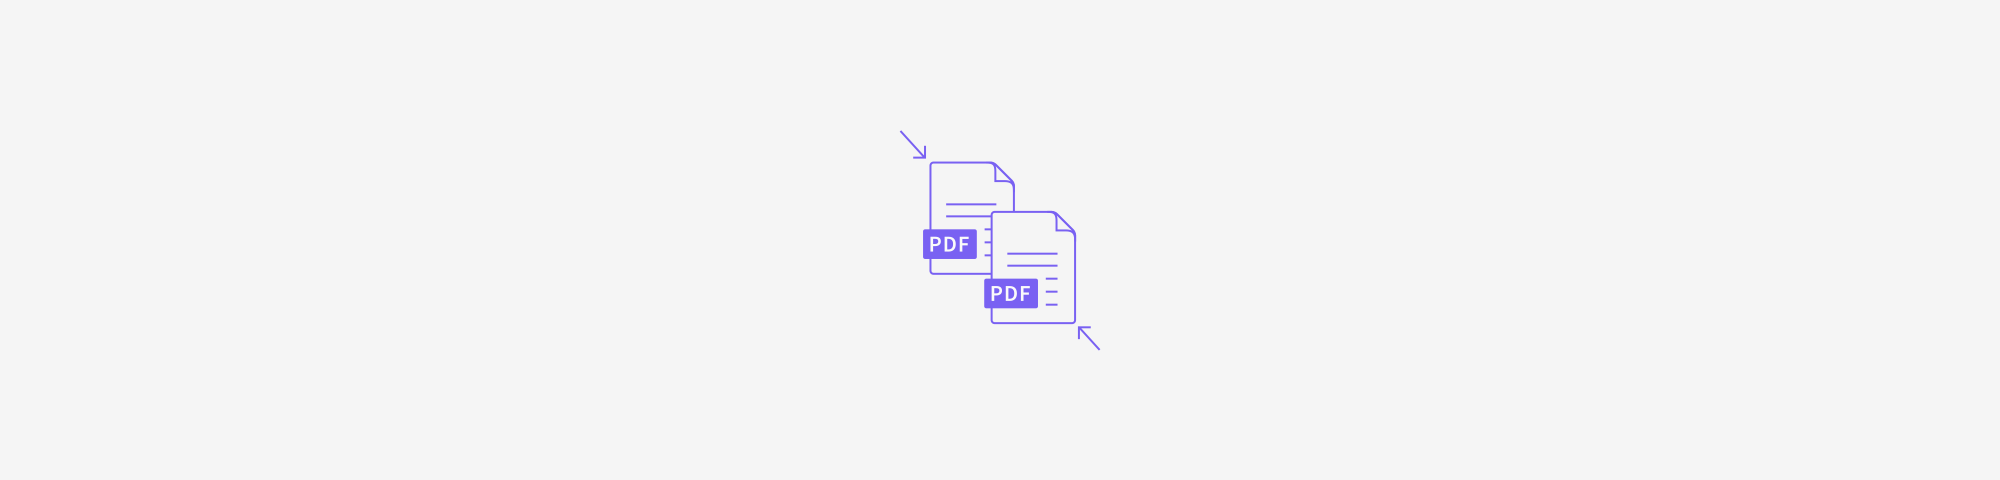 how-to-combine-multiple-pdf-files-into-one-document